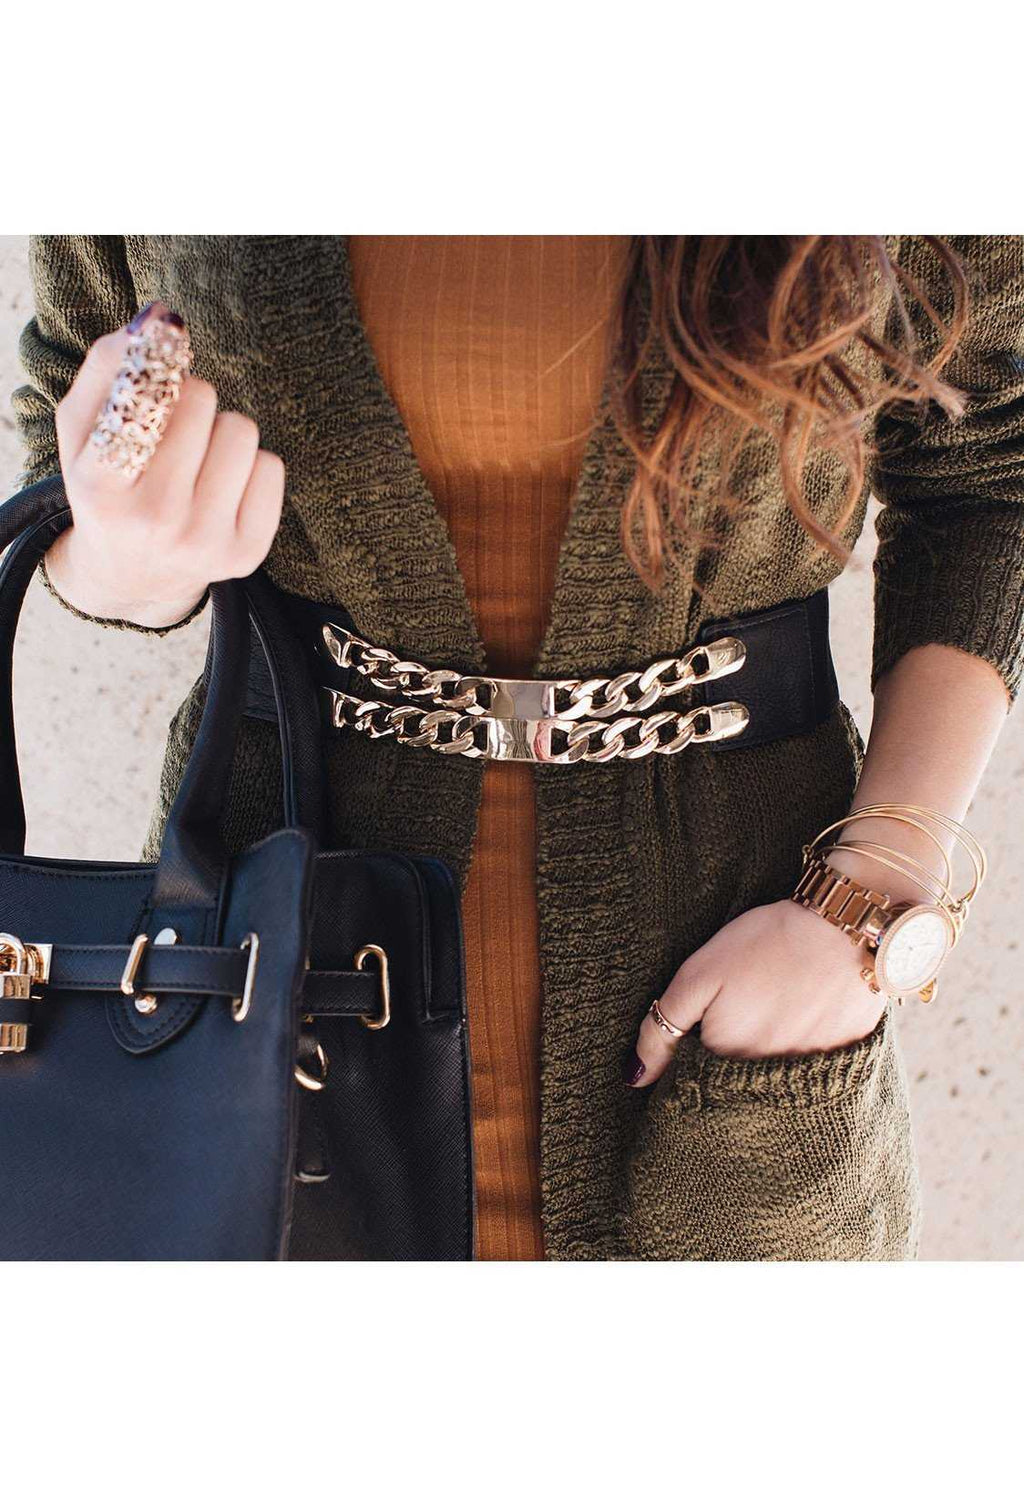 Accessories - Double Trouble Chain Belt